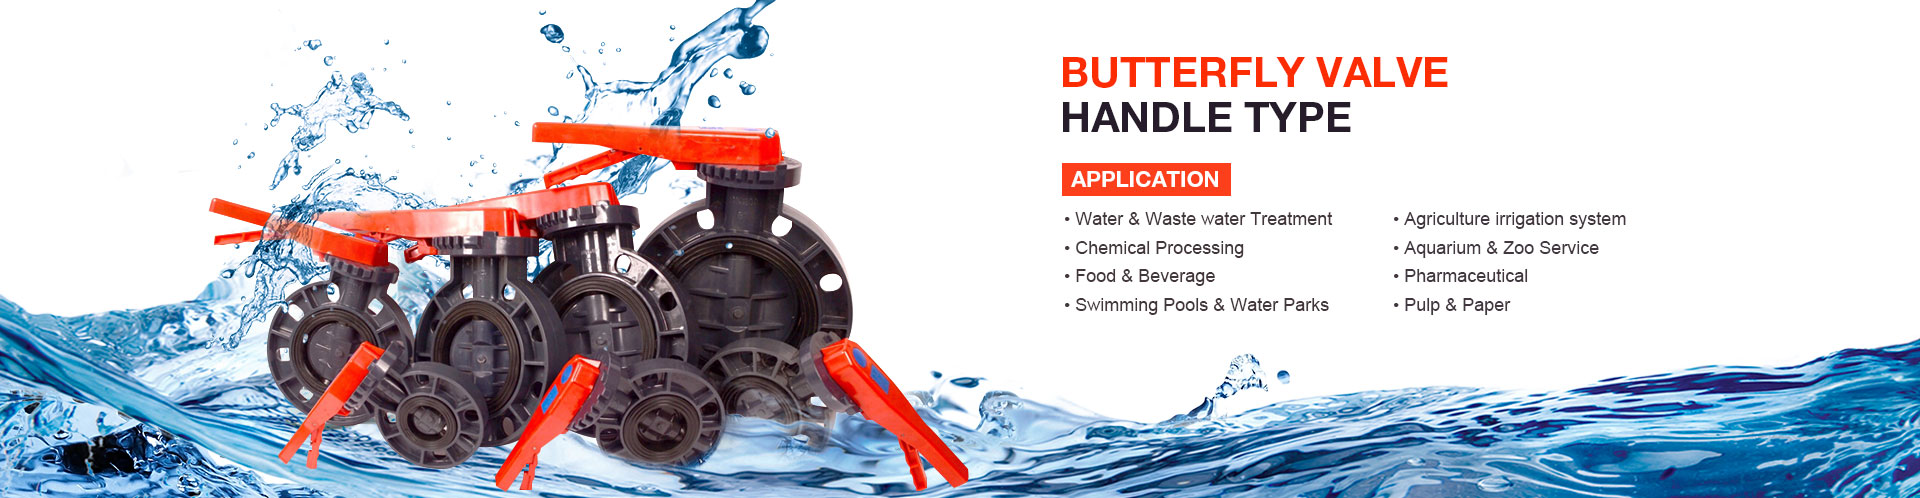 Butterfly-Valve-Handle-type